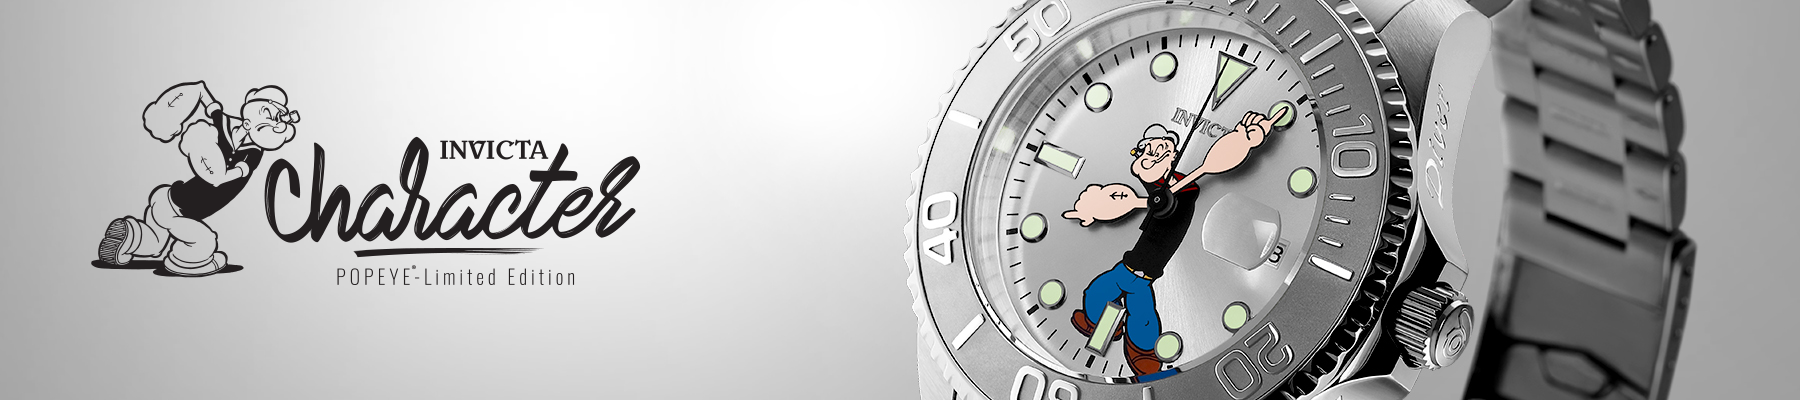 Invicta Character Collection